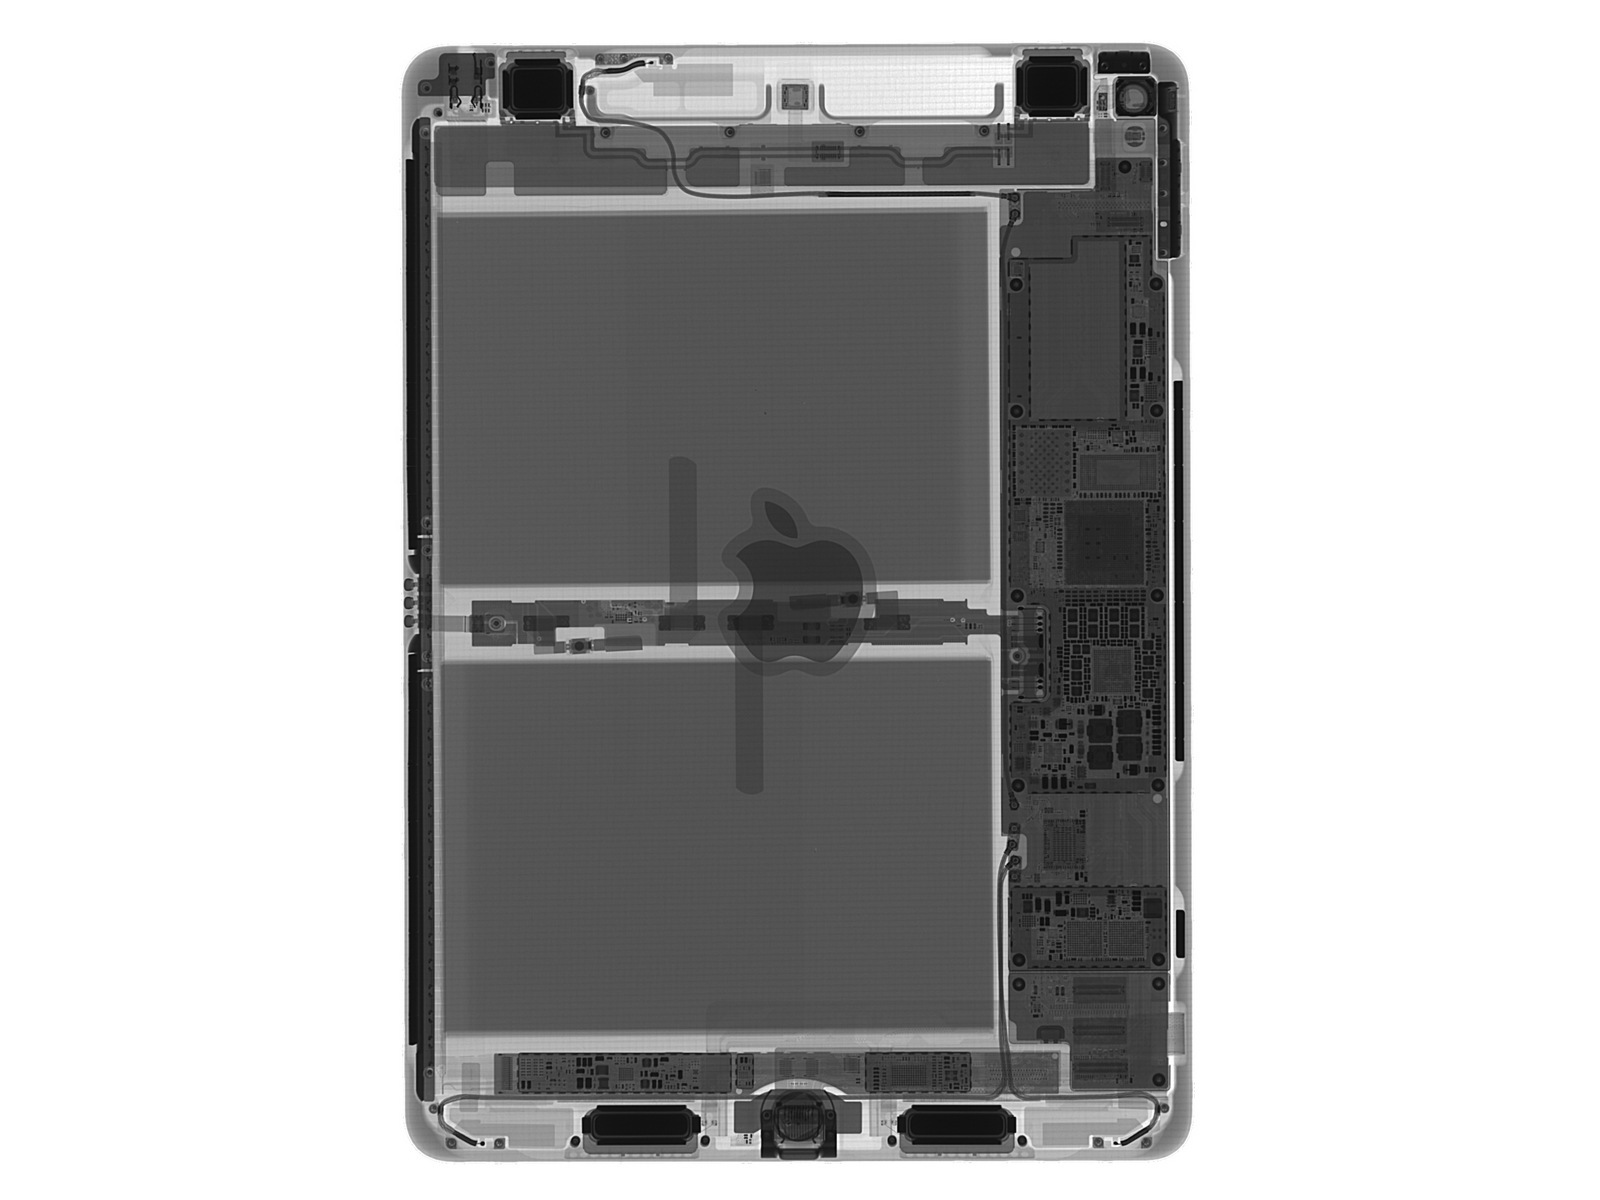 ipadpro-teardown1